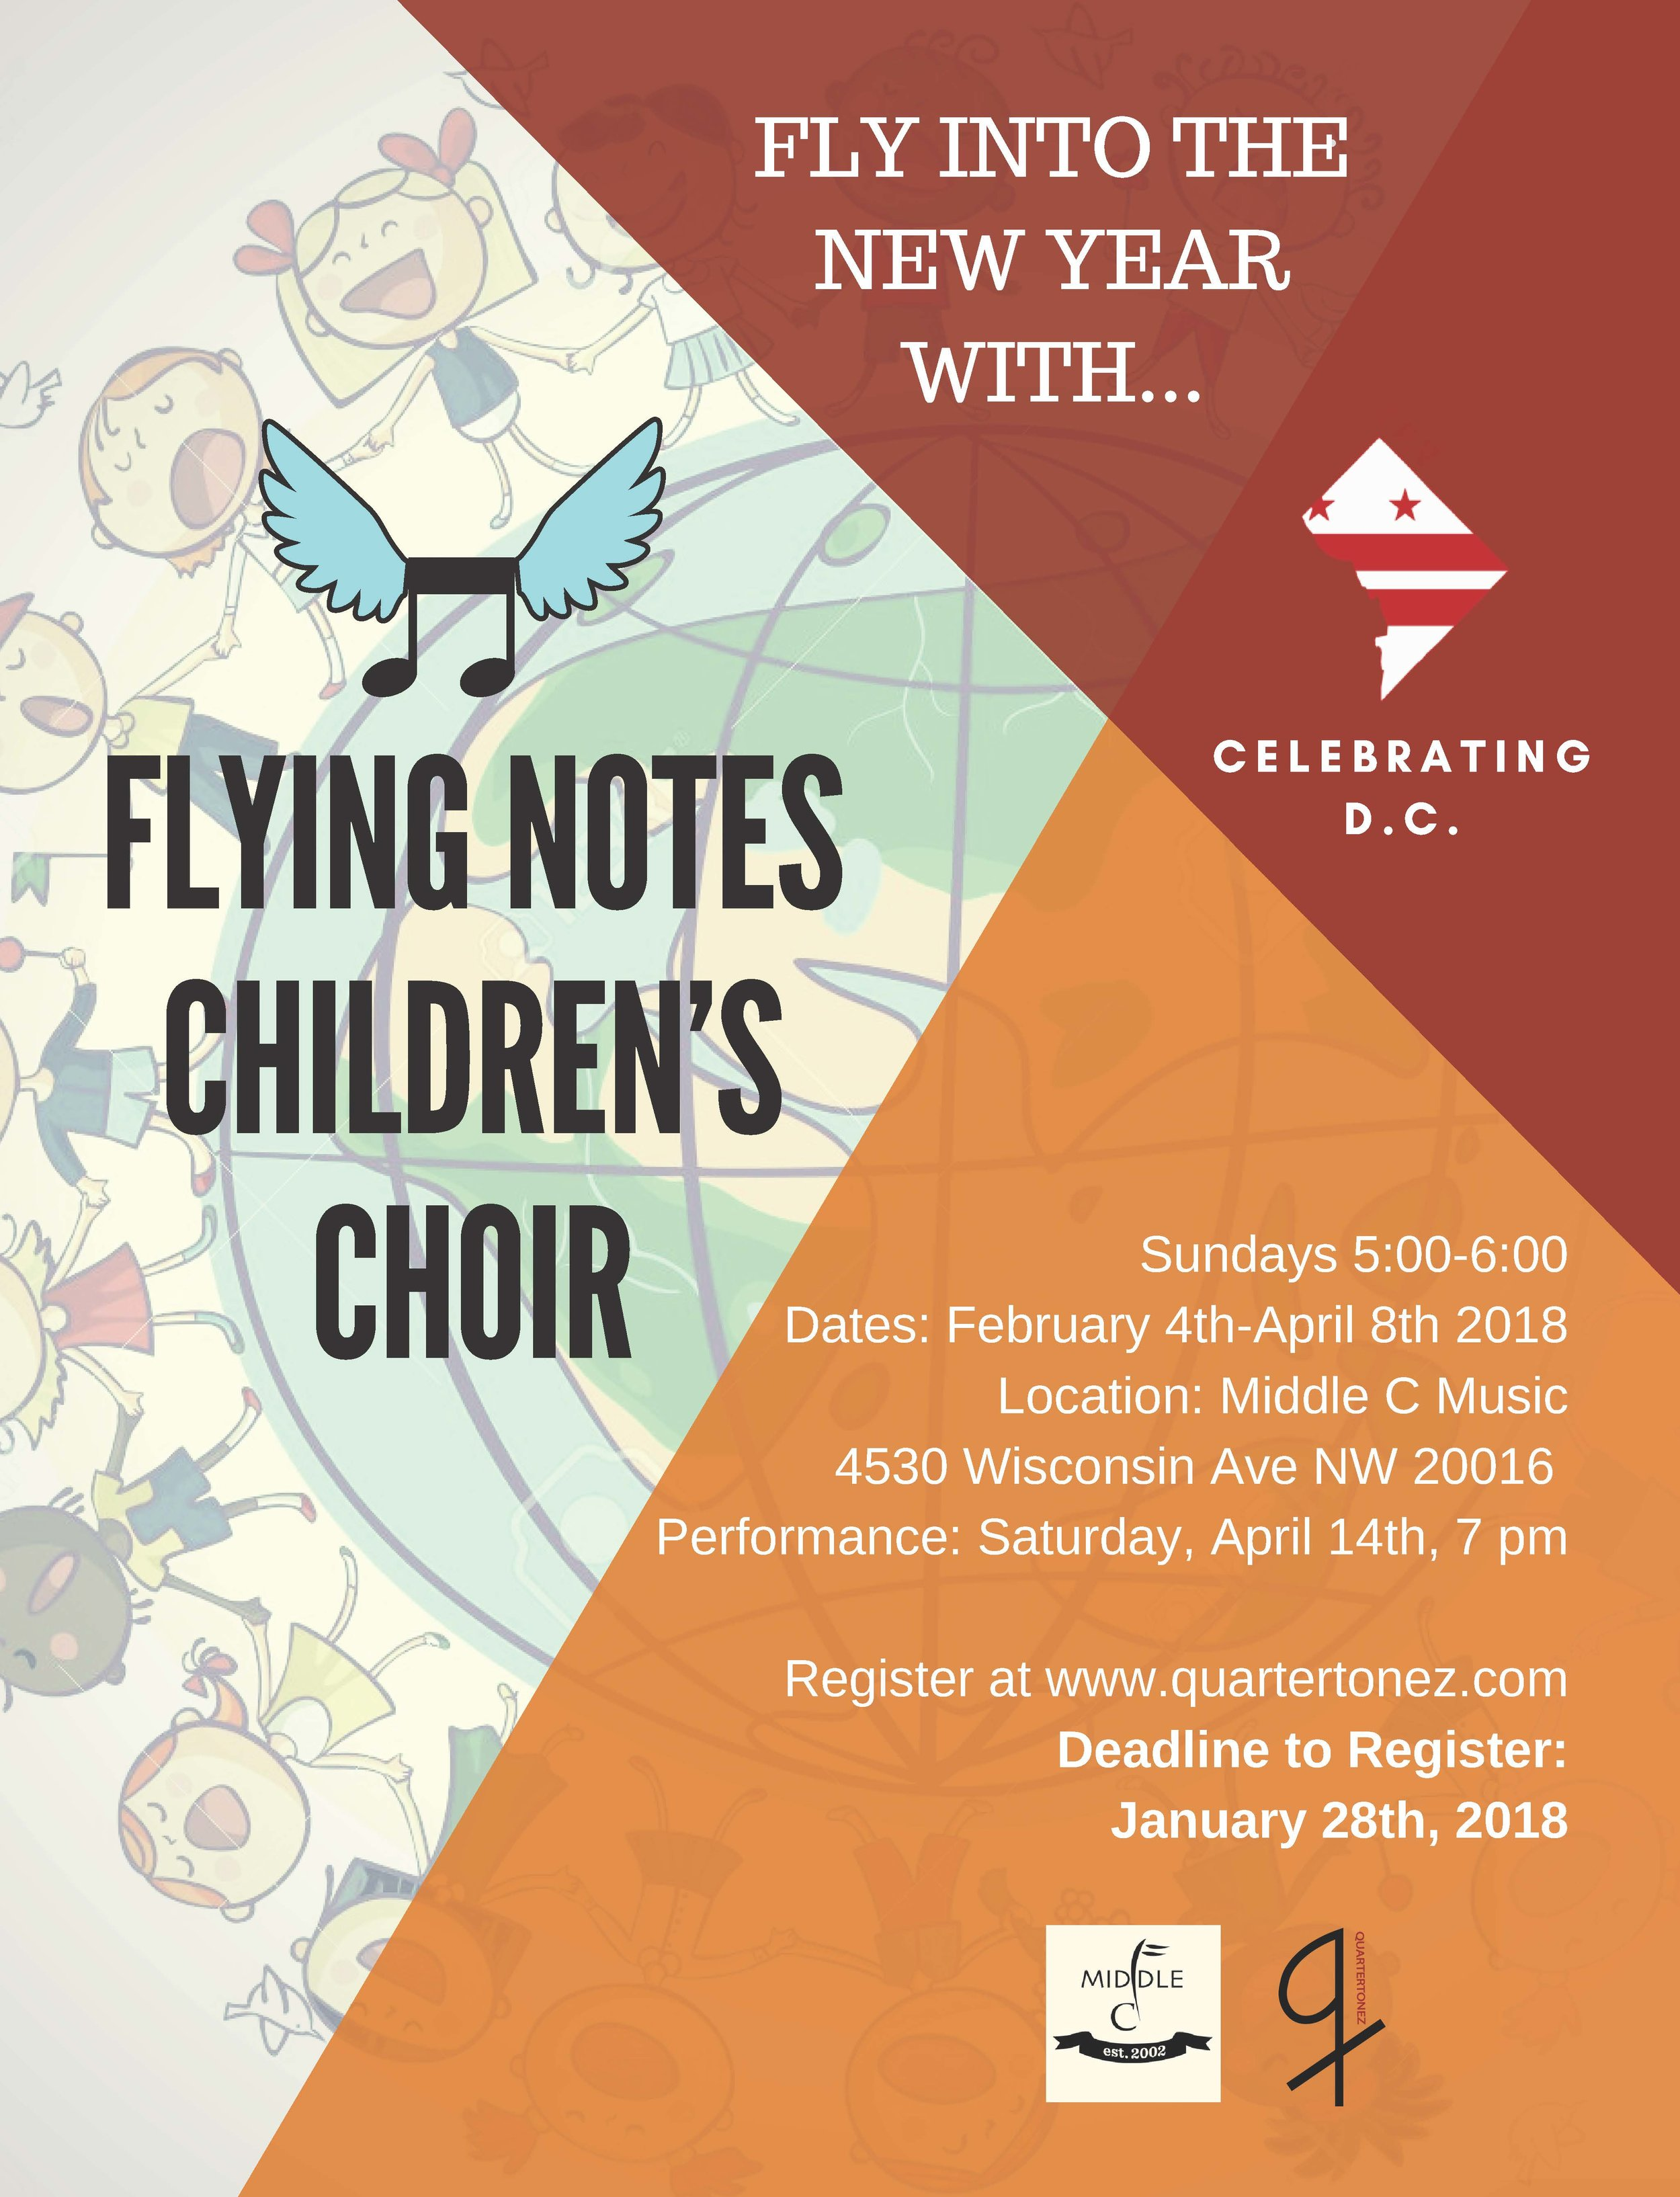 Middle C Music is proud to partner with  Quartertonez Music  to present Flying Notes Children's Choir! Your child will be exposed to the universal language of music through the exploration of cultures around the world. Sign up at  quartertonez.com   This semester the choir will learn the history and traditions of music in Washington D.C. from DC natives  Duke Ellington ,  Roberta Flack  and  Marvin Gaye .   Lets all celebrate the rich culture of Washington, D.C., and fly into the new year with the Flying Note's Children's Choir!